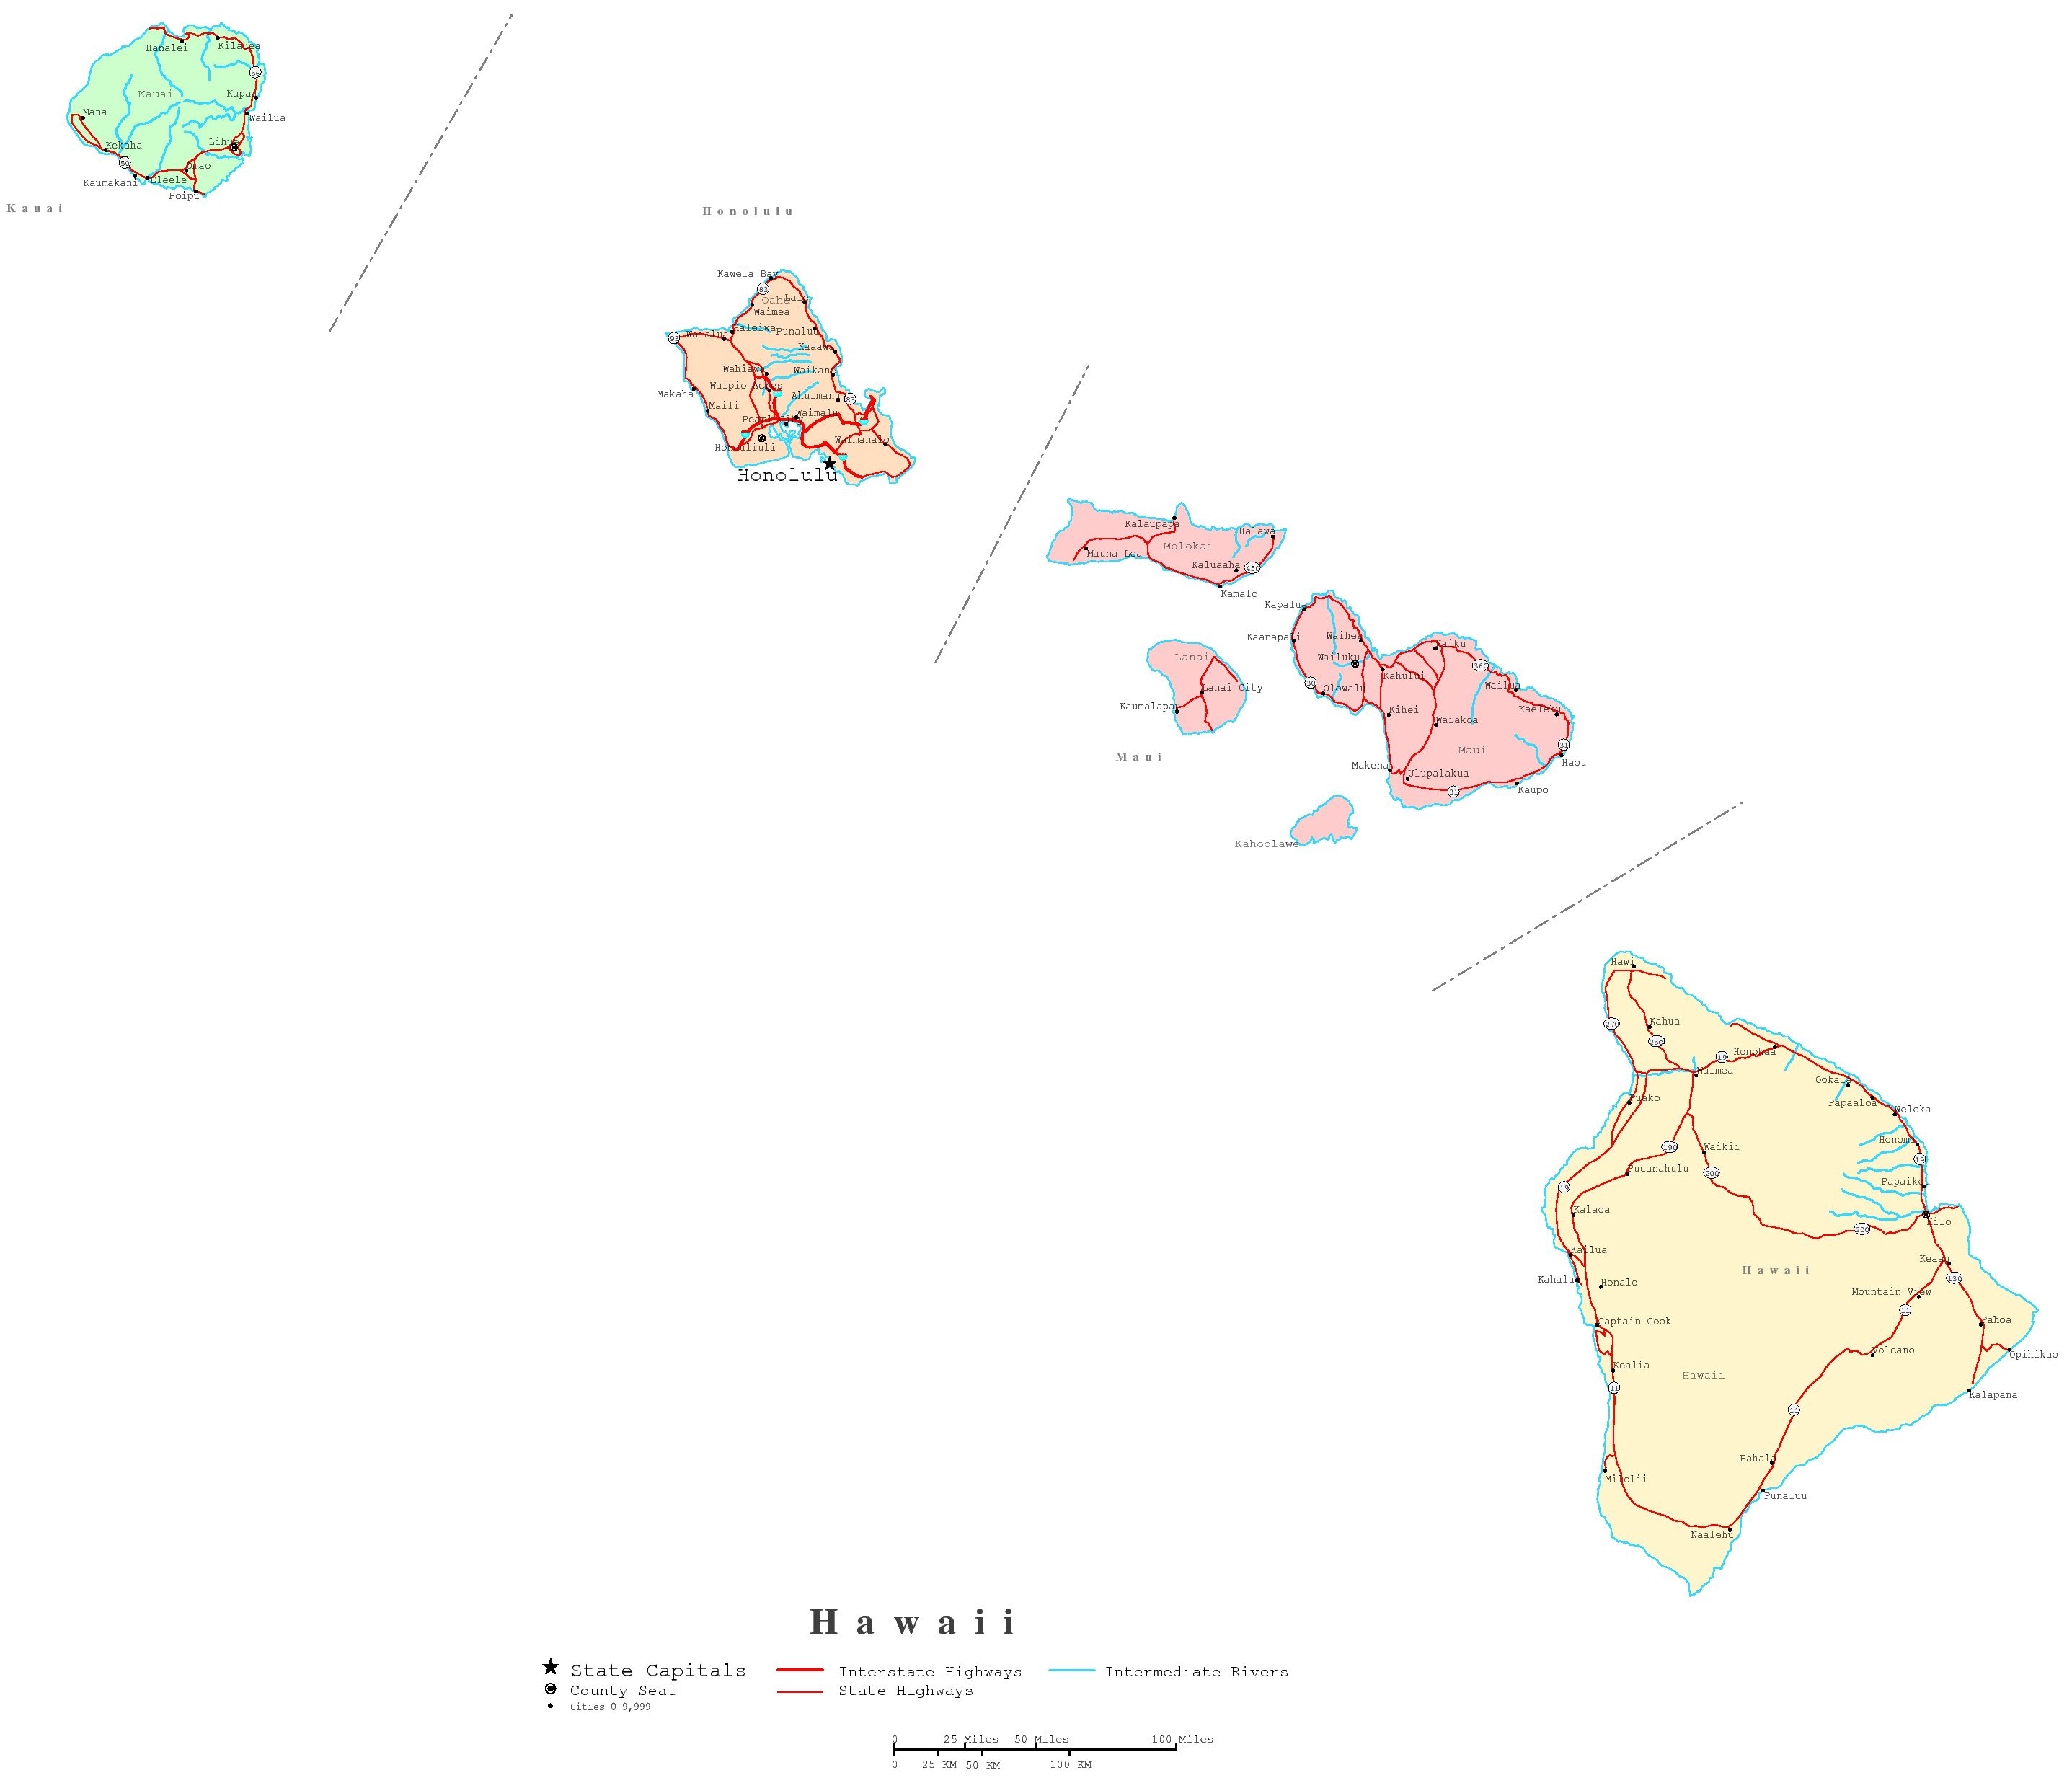 image relating to Printable Map of Hawaiian Islands called Hawaii Printable Map